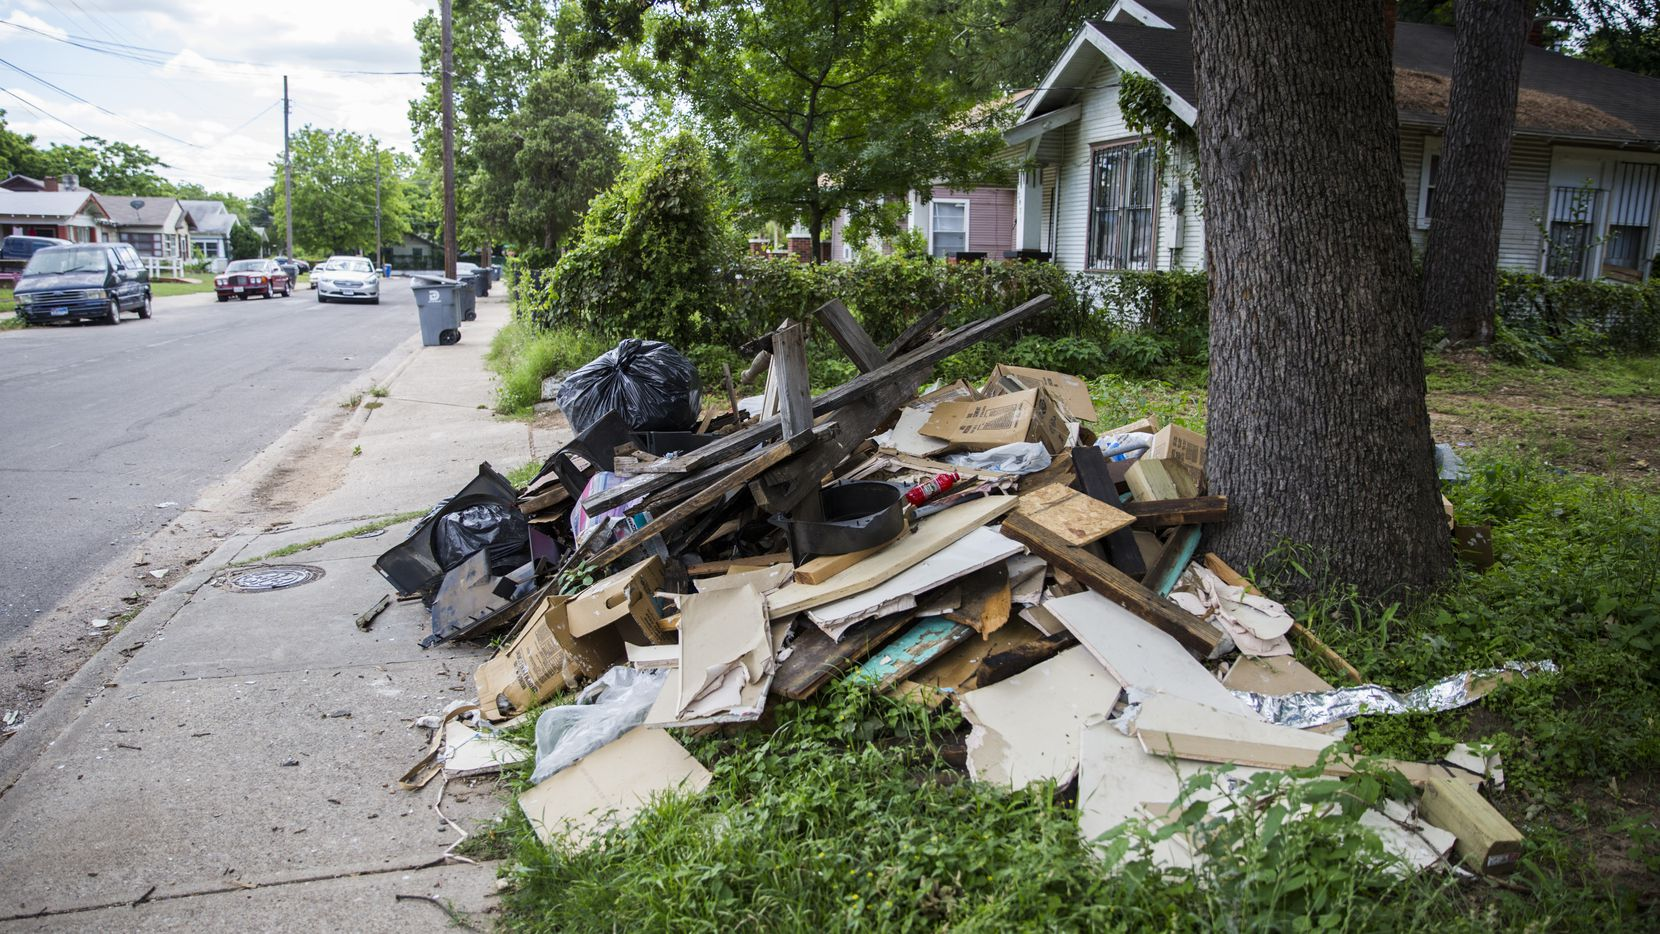 In Dallas, sometimes it's difficult to determine where bulk trash ends and illegal dumping begins.